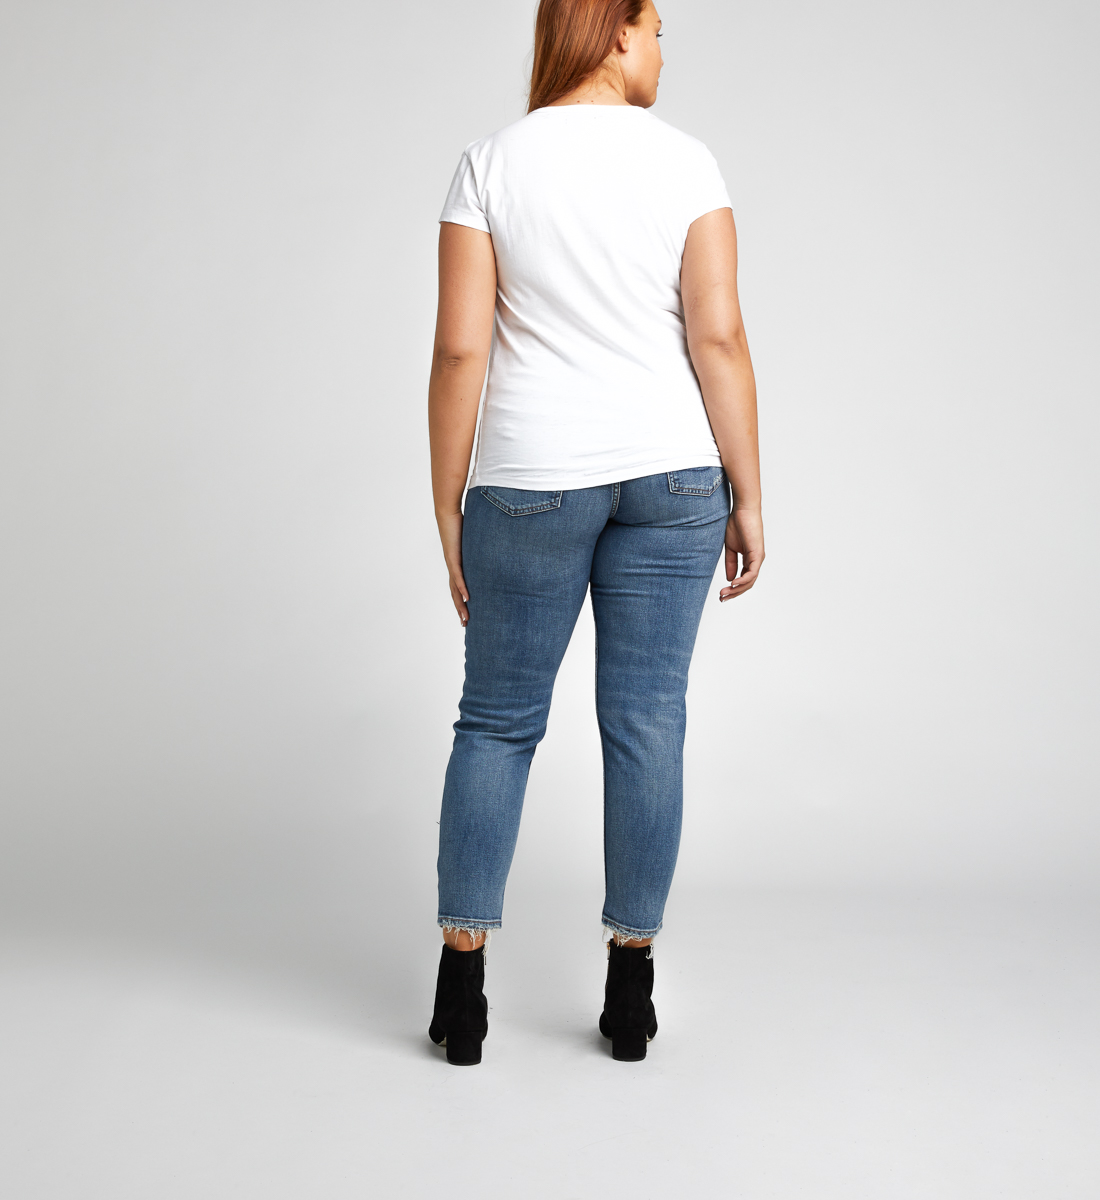 Alexis Roar & Roll Shredded Tee, White, hi-res